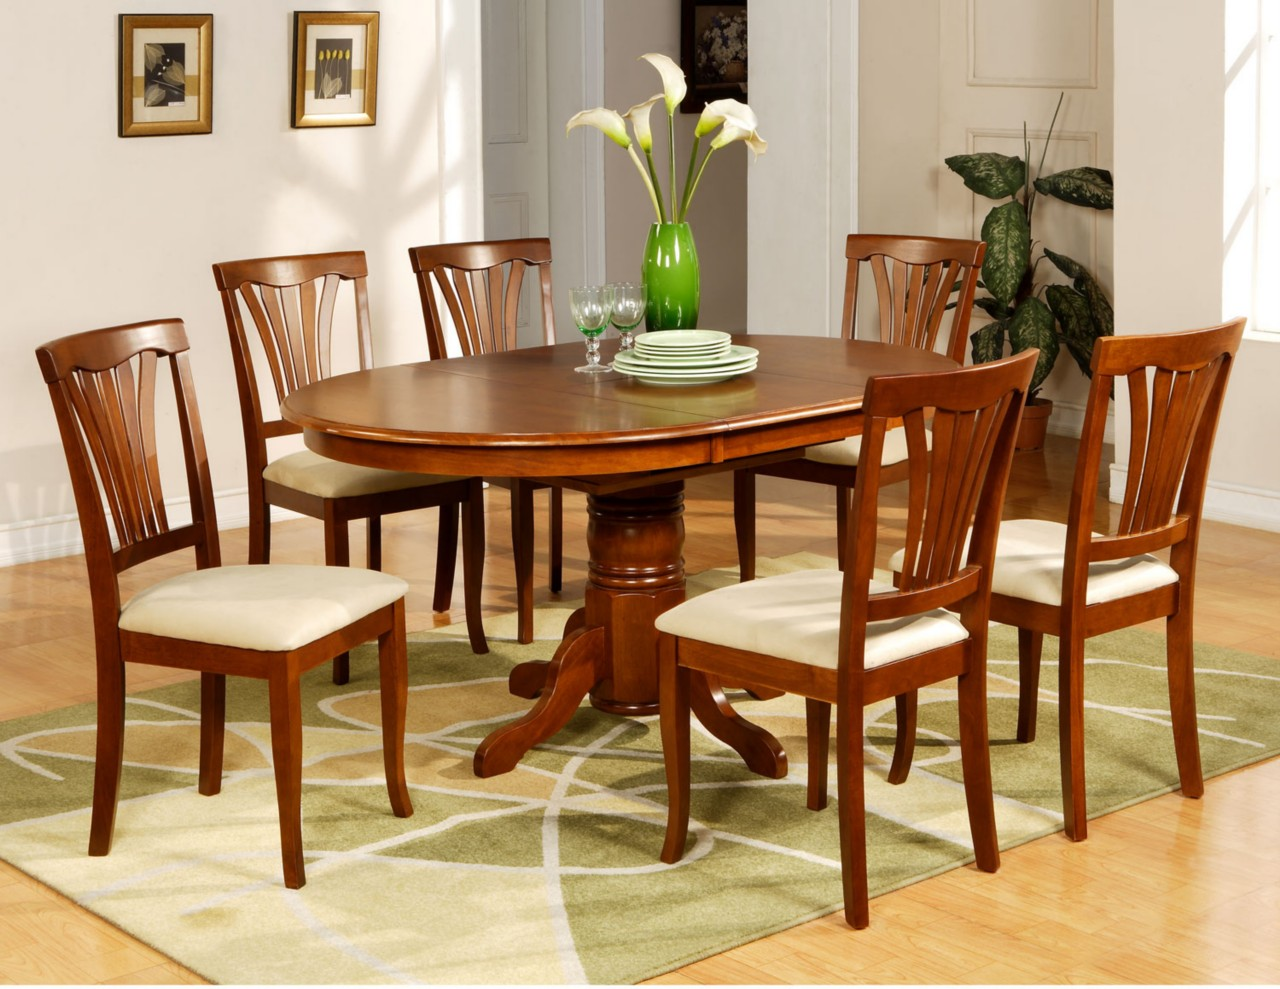 7 pc avon oval dinette kitchen dining room table with 6 chairs in saddle brown ebay. Black Bedroom Furniture Sets. Home Design Ideas